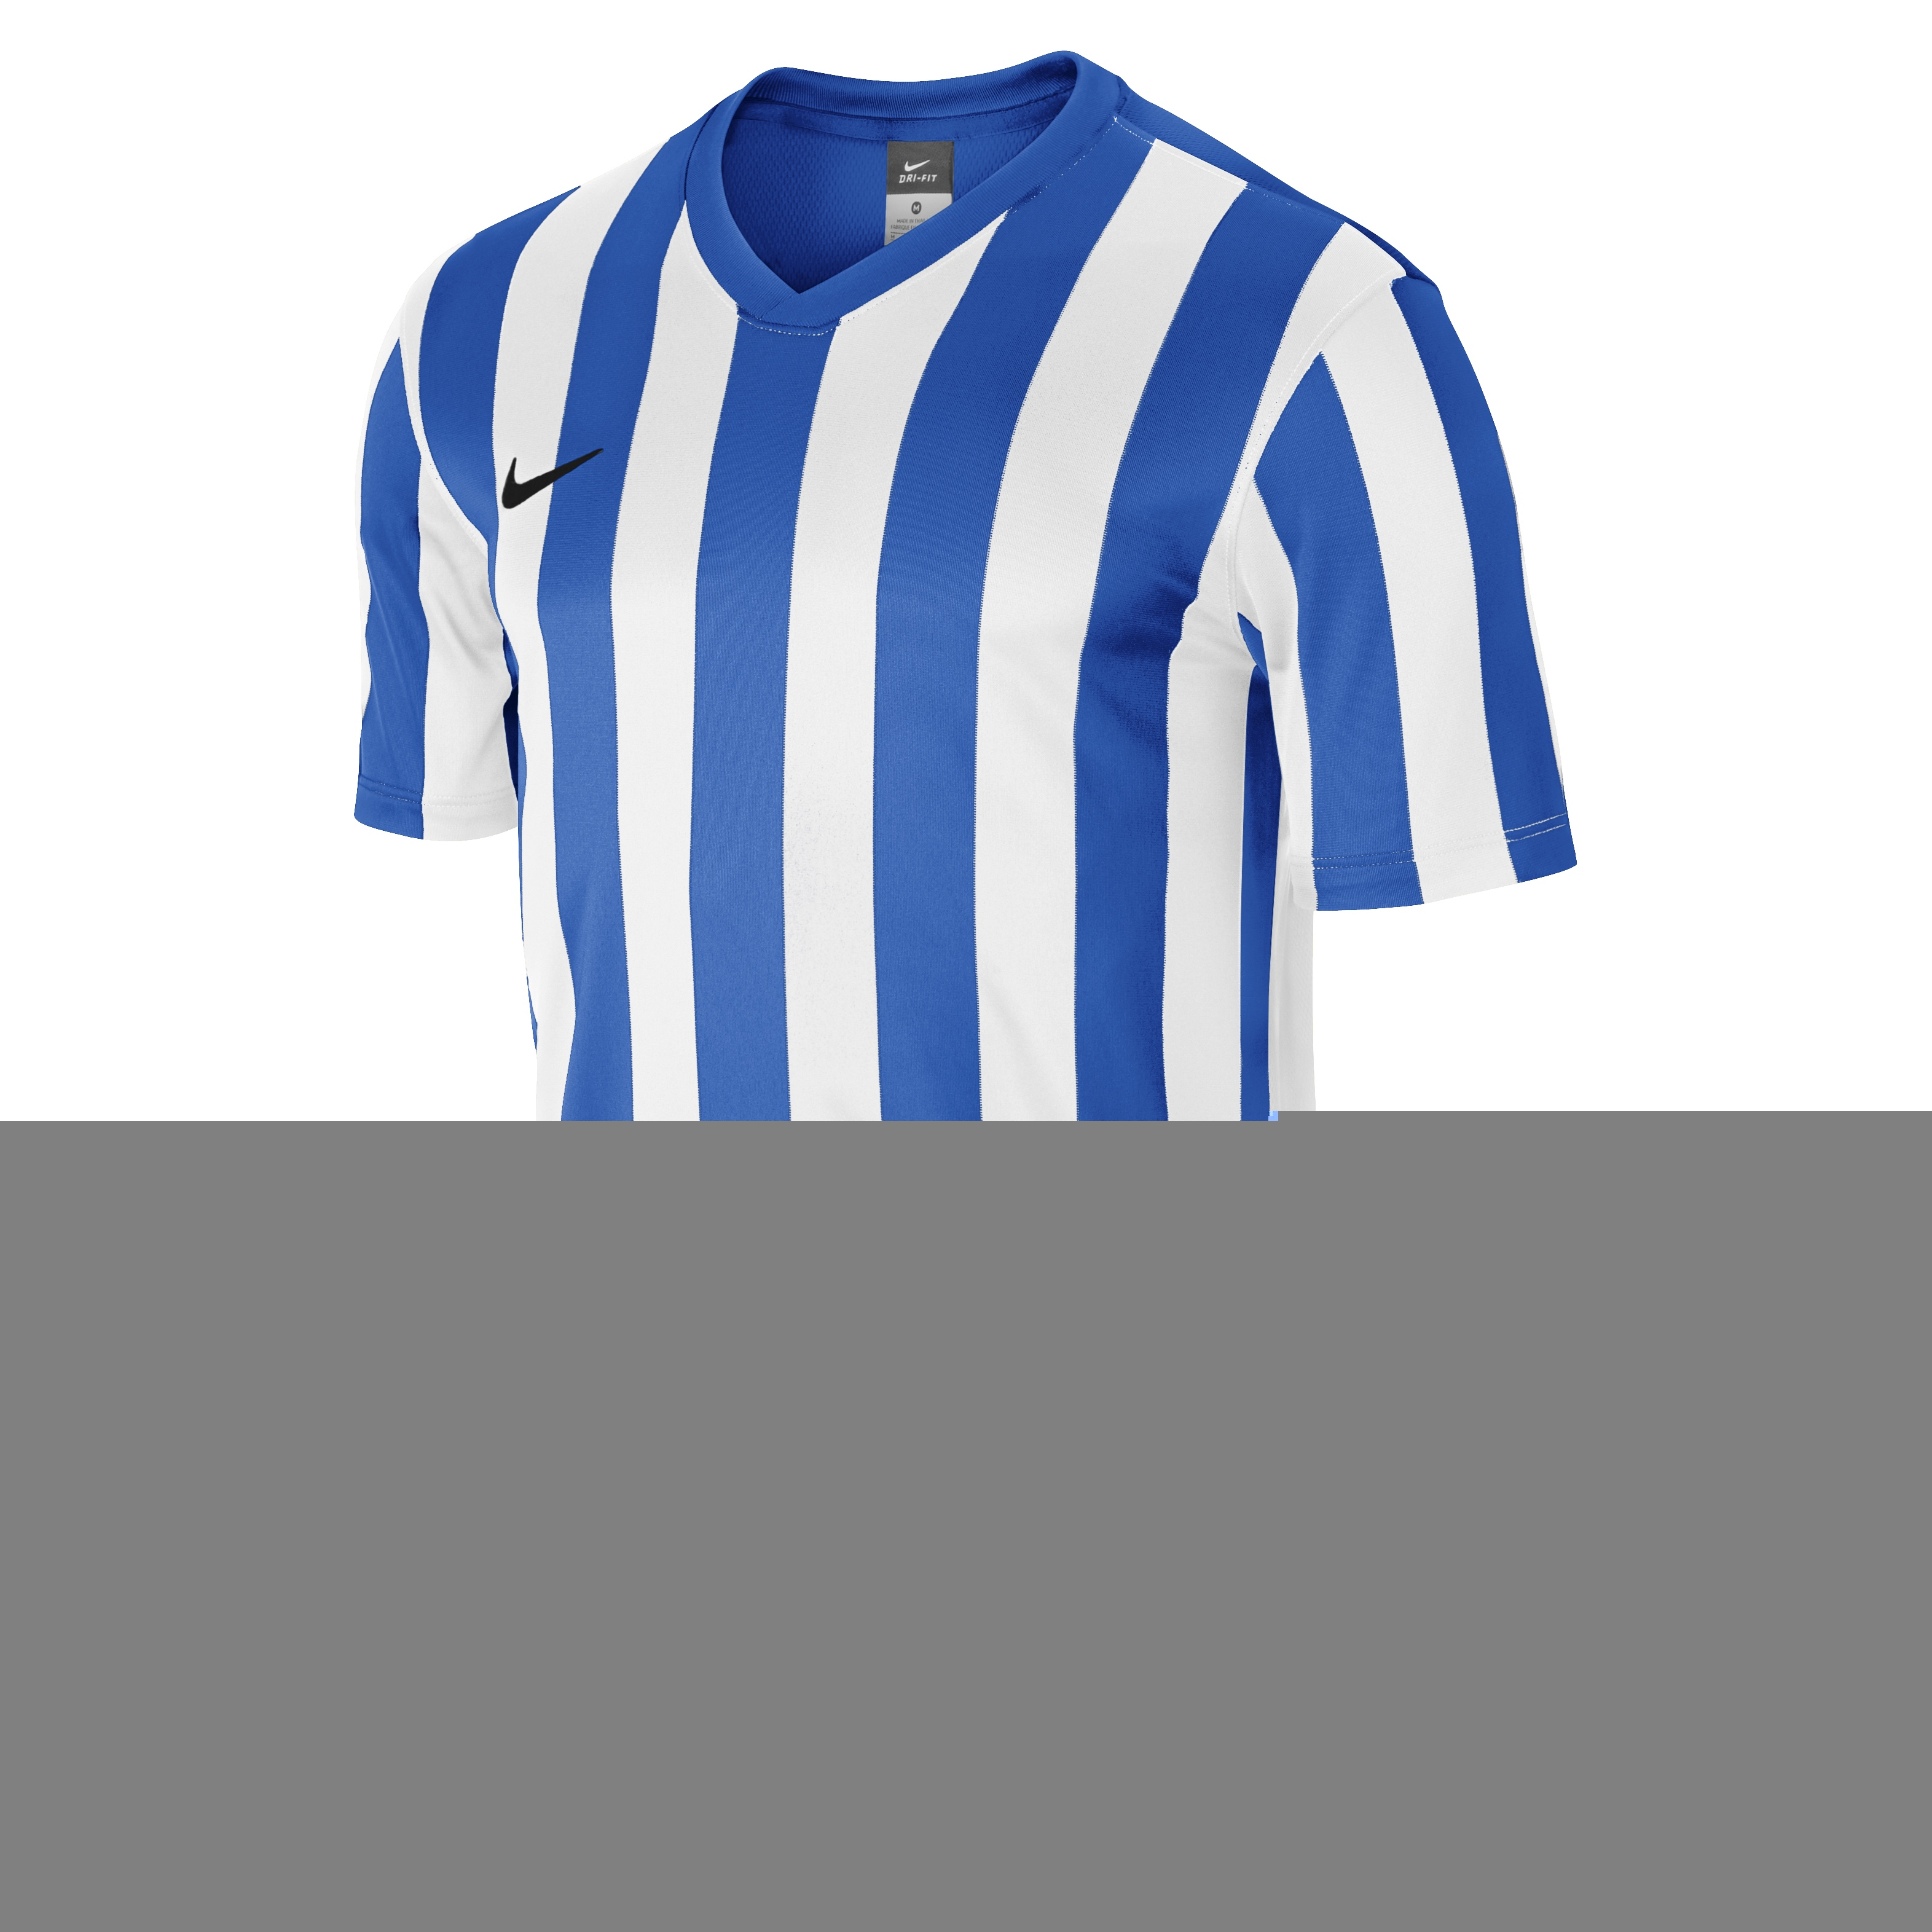 3f6745211dc Blue And White Striped Football Shirts